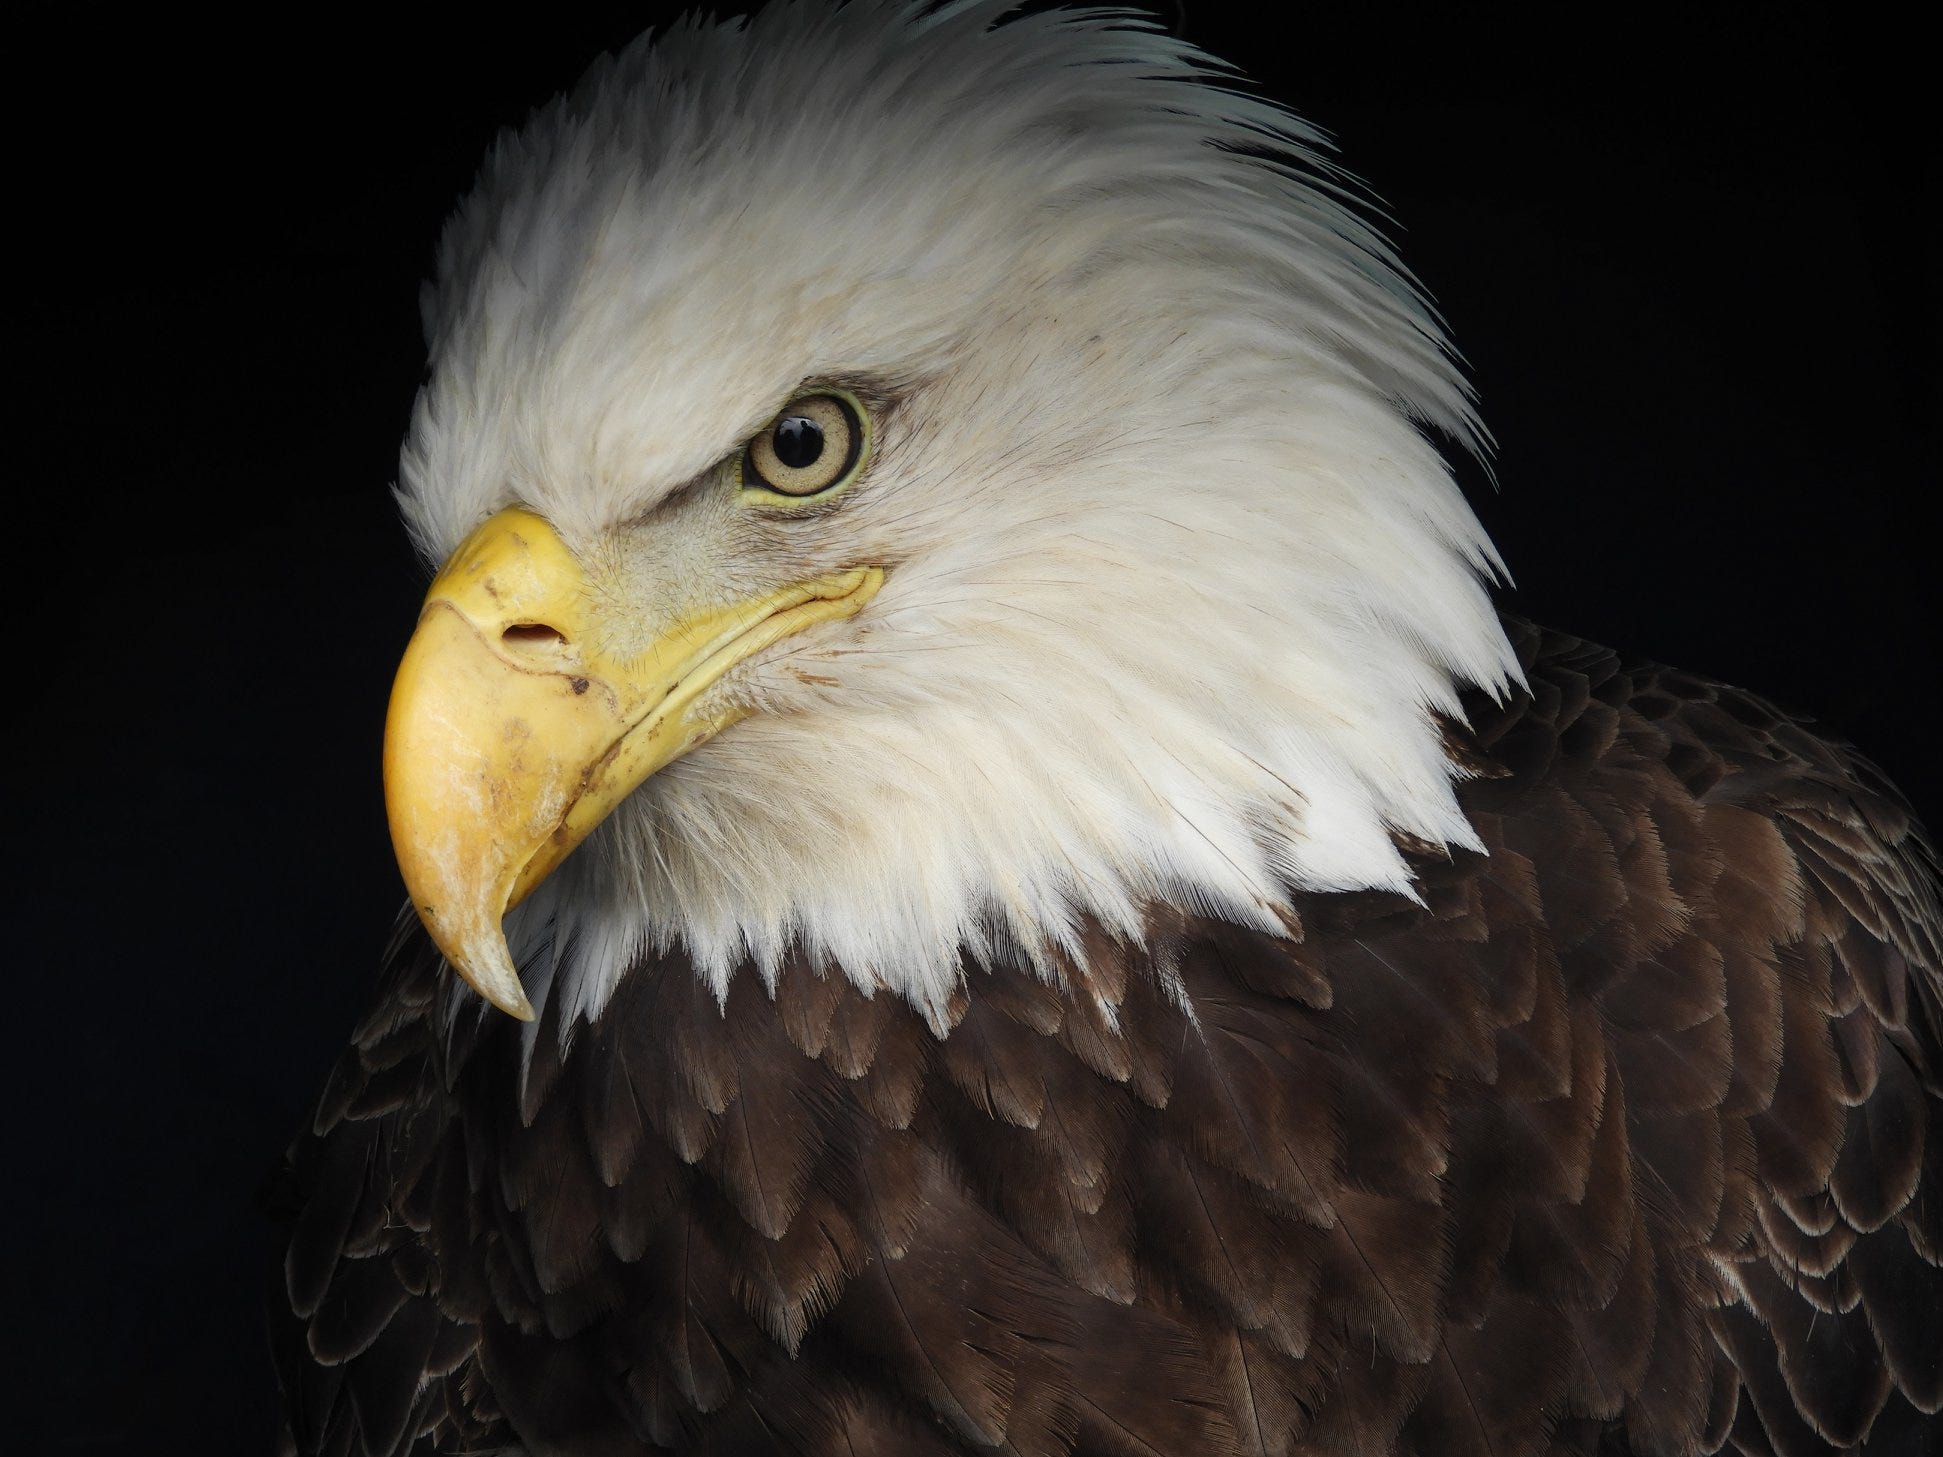 This mature, female bald eagle died from lead poisoning in early 2019.